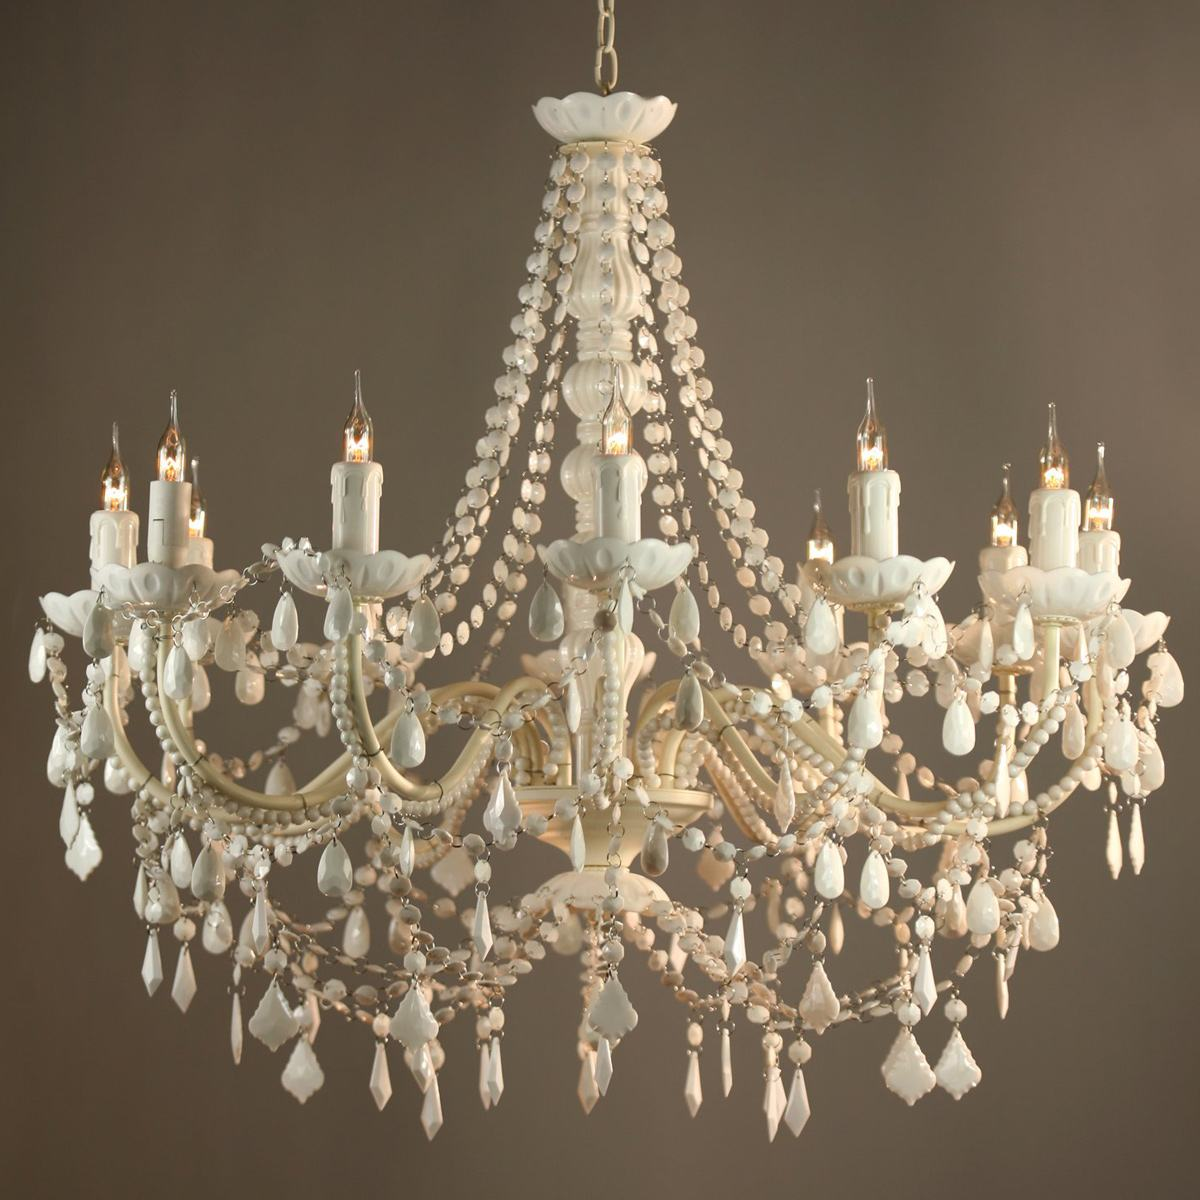 Fifi french vintage style white 12 arm acrylic chandelier ebay - Lights and chandeliers ...